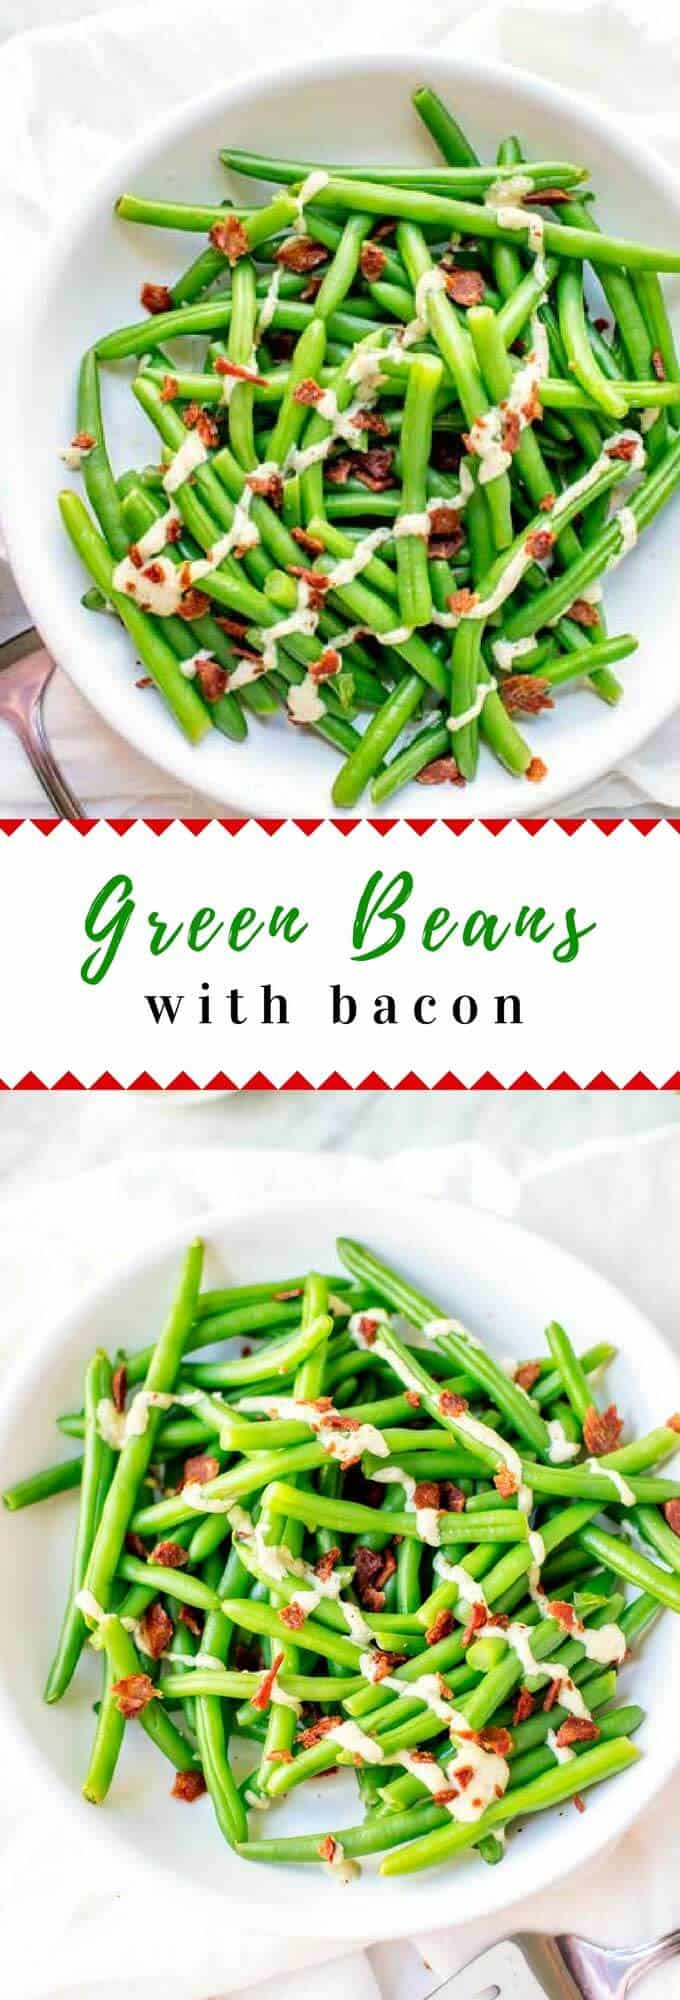 Green Beans with Bacon are an great easy to make side dish that is perfect for most any occasion. Fresh green beans and bacon are elevated with a delicious garlic tahini sauce. #vegetables #greenbeans #greenbeanrecipes #healthyrecipes